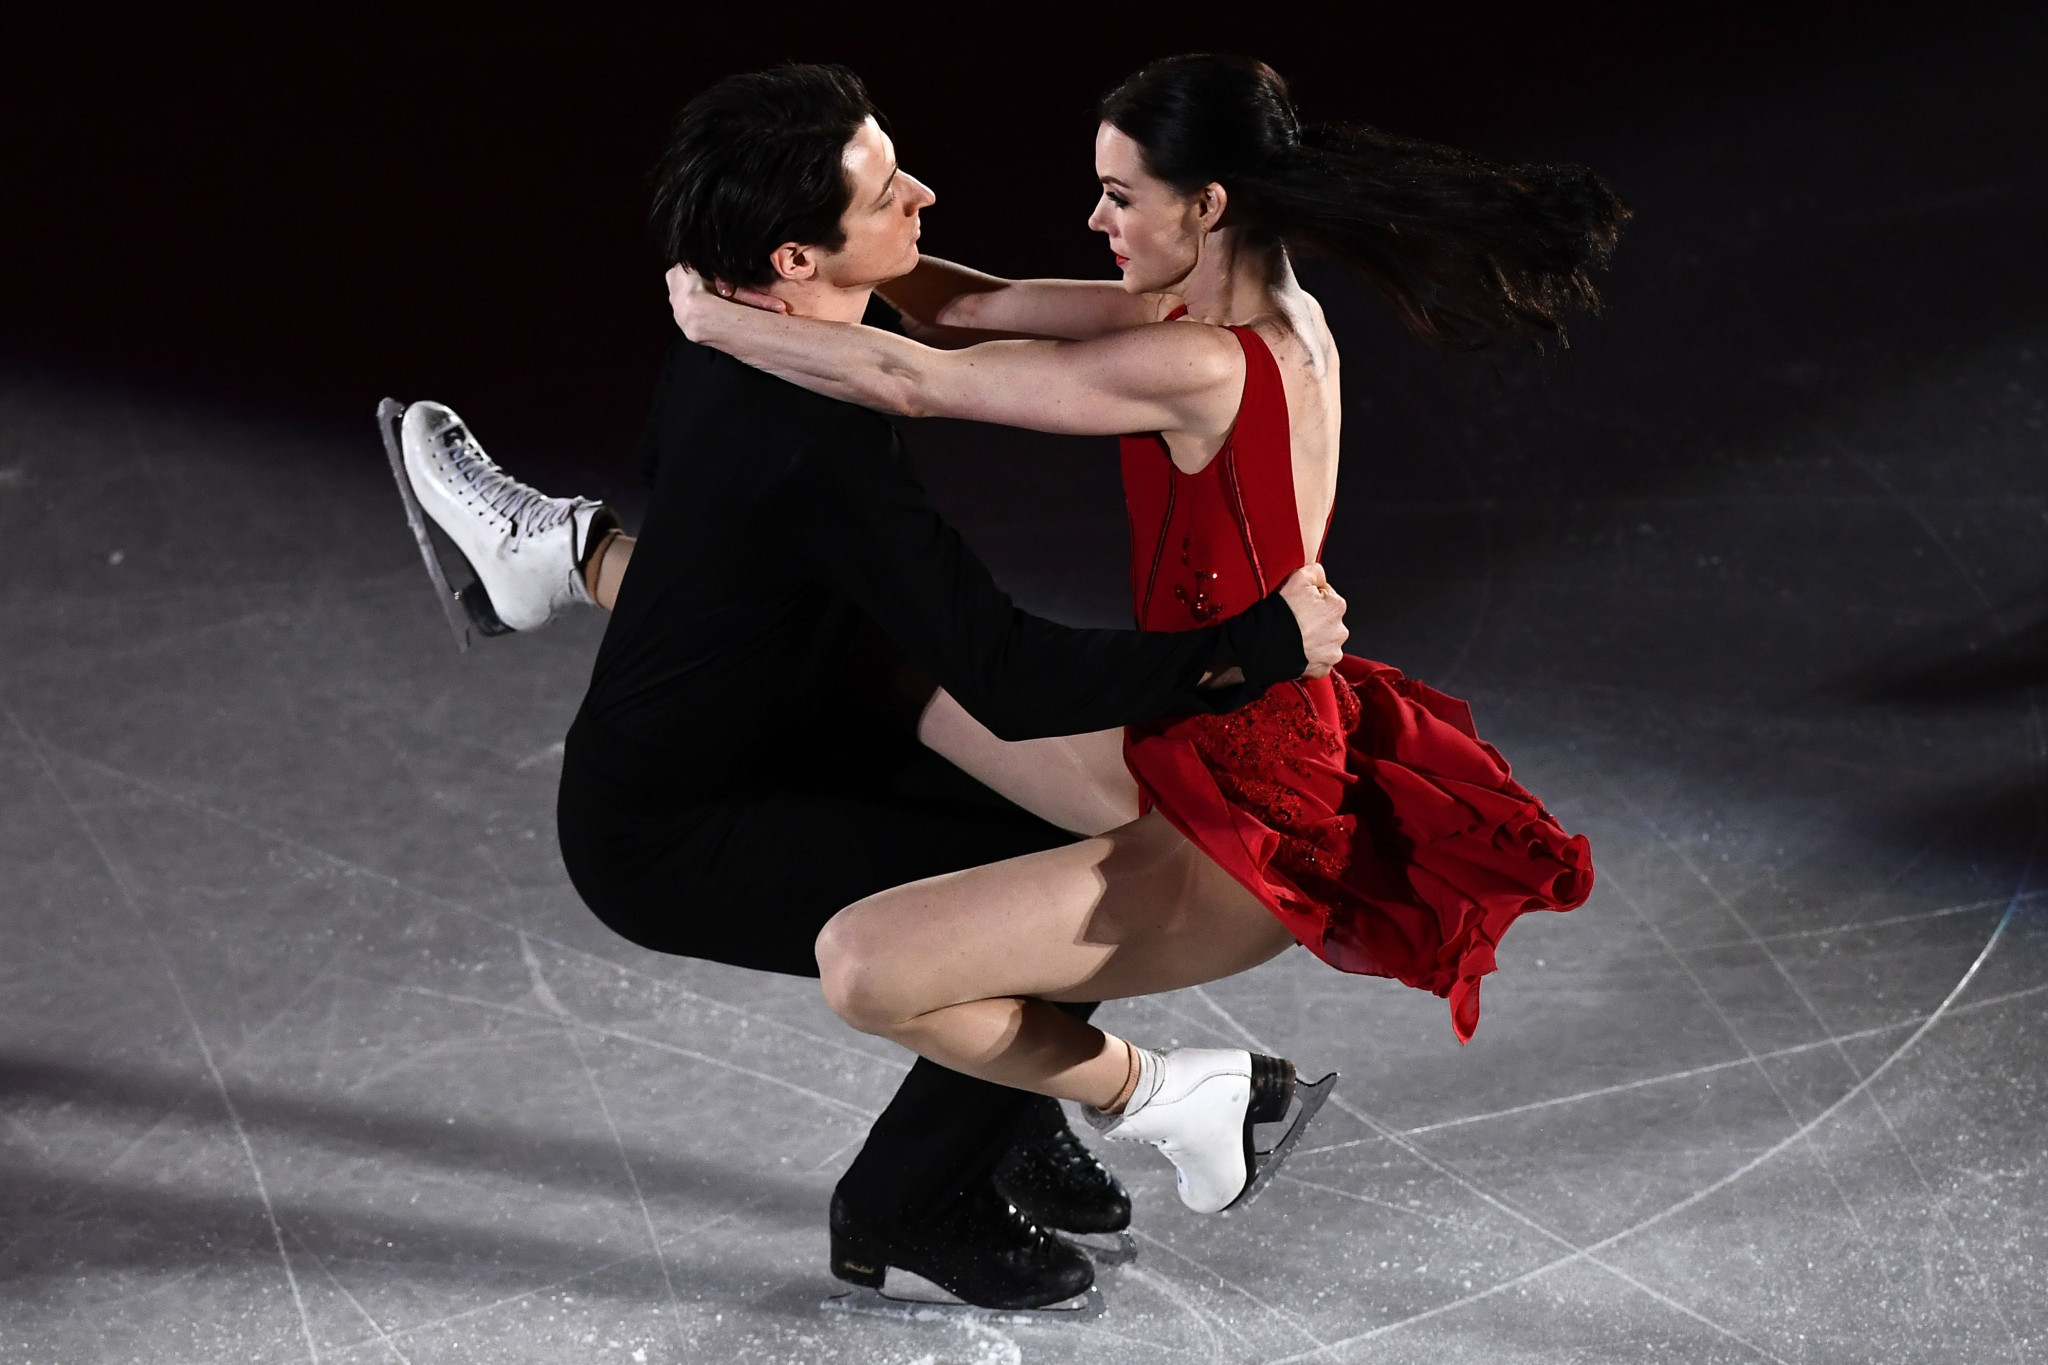 Two-time Olympic and three-time world champions Tessa Virtue and Scott Moir are not included, having retired after Pyeongchang 2018 ©Getty Images